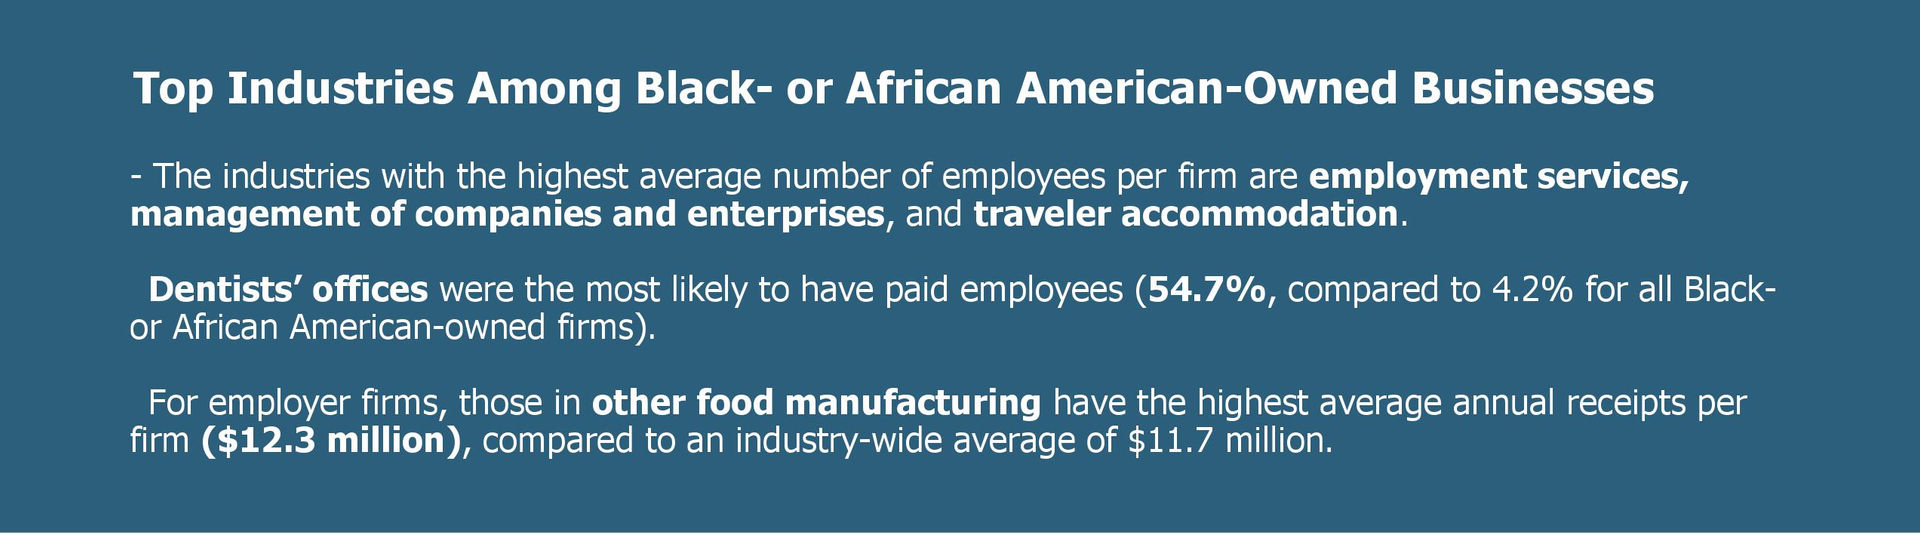 Top Industries Among Black or African American - Owned Businesses